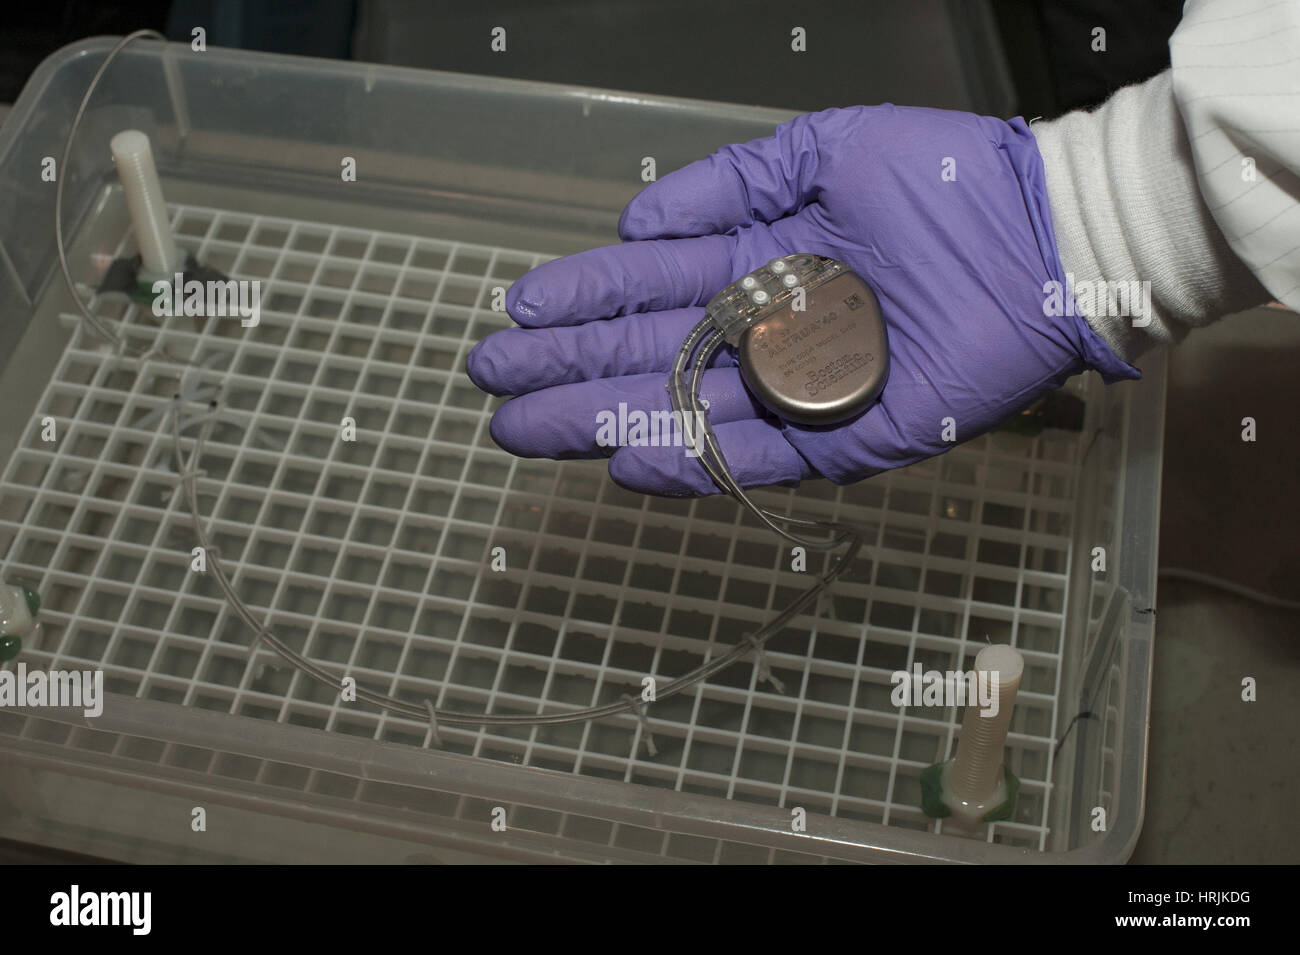 Pacemaker Test, 2015 - Stock Image